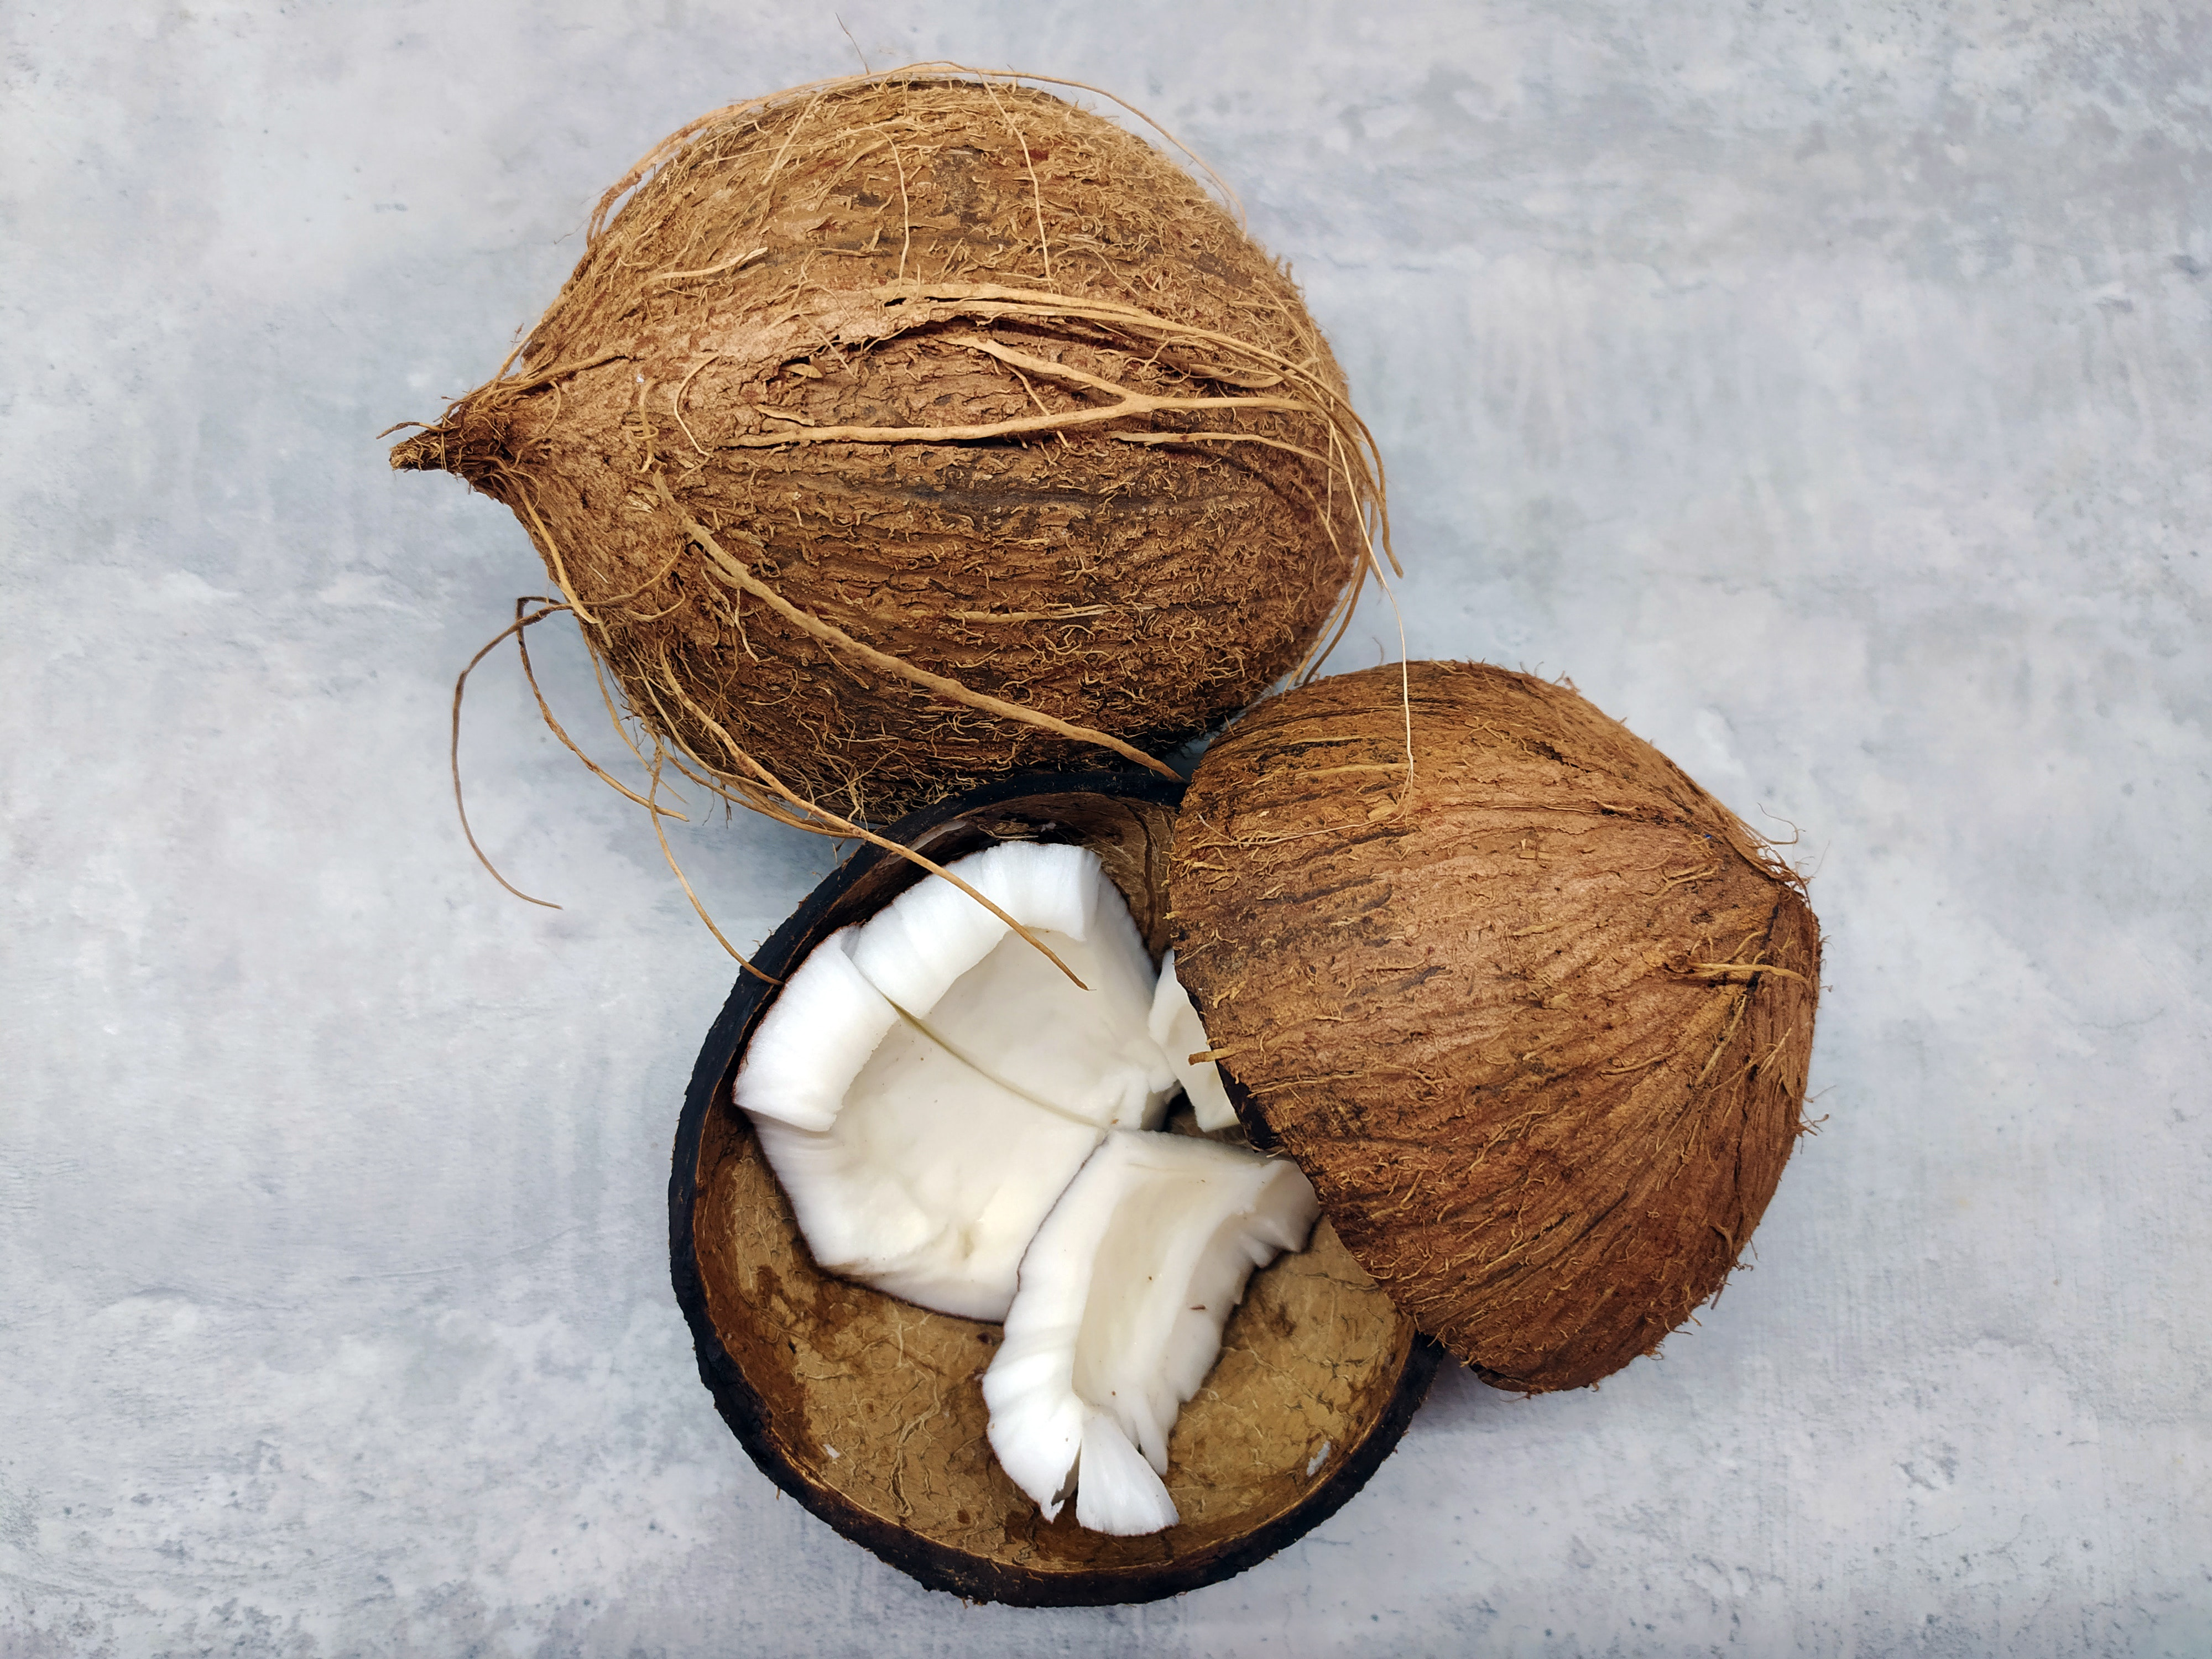 Two coconuts on a white background, one split in two